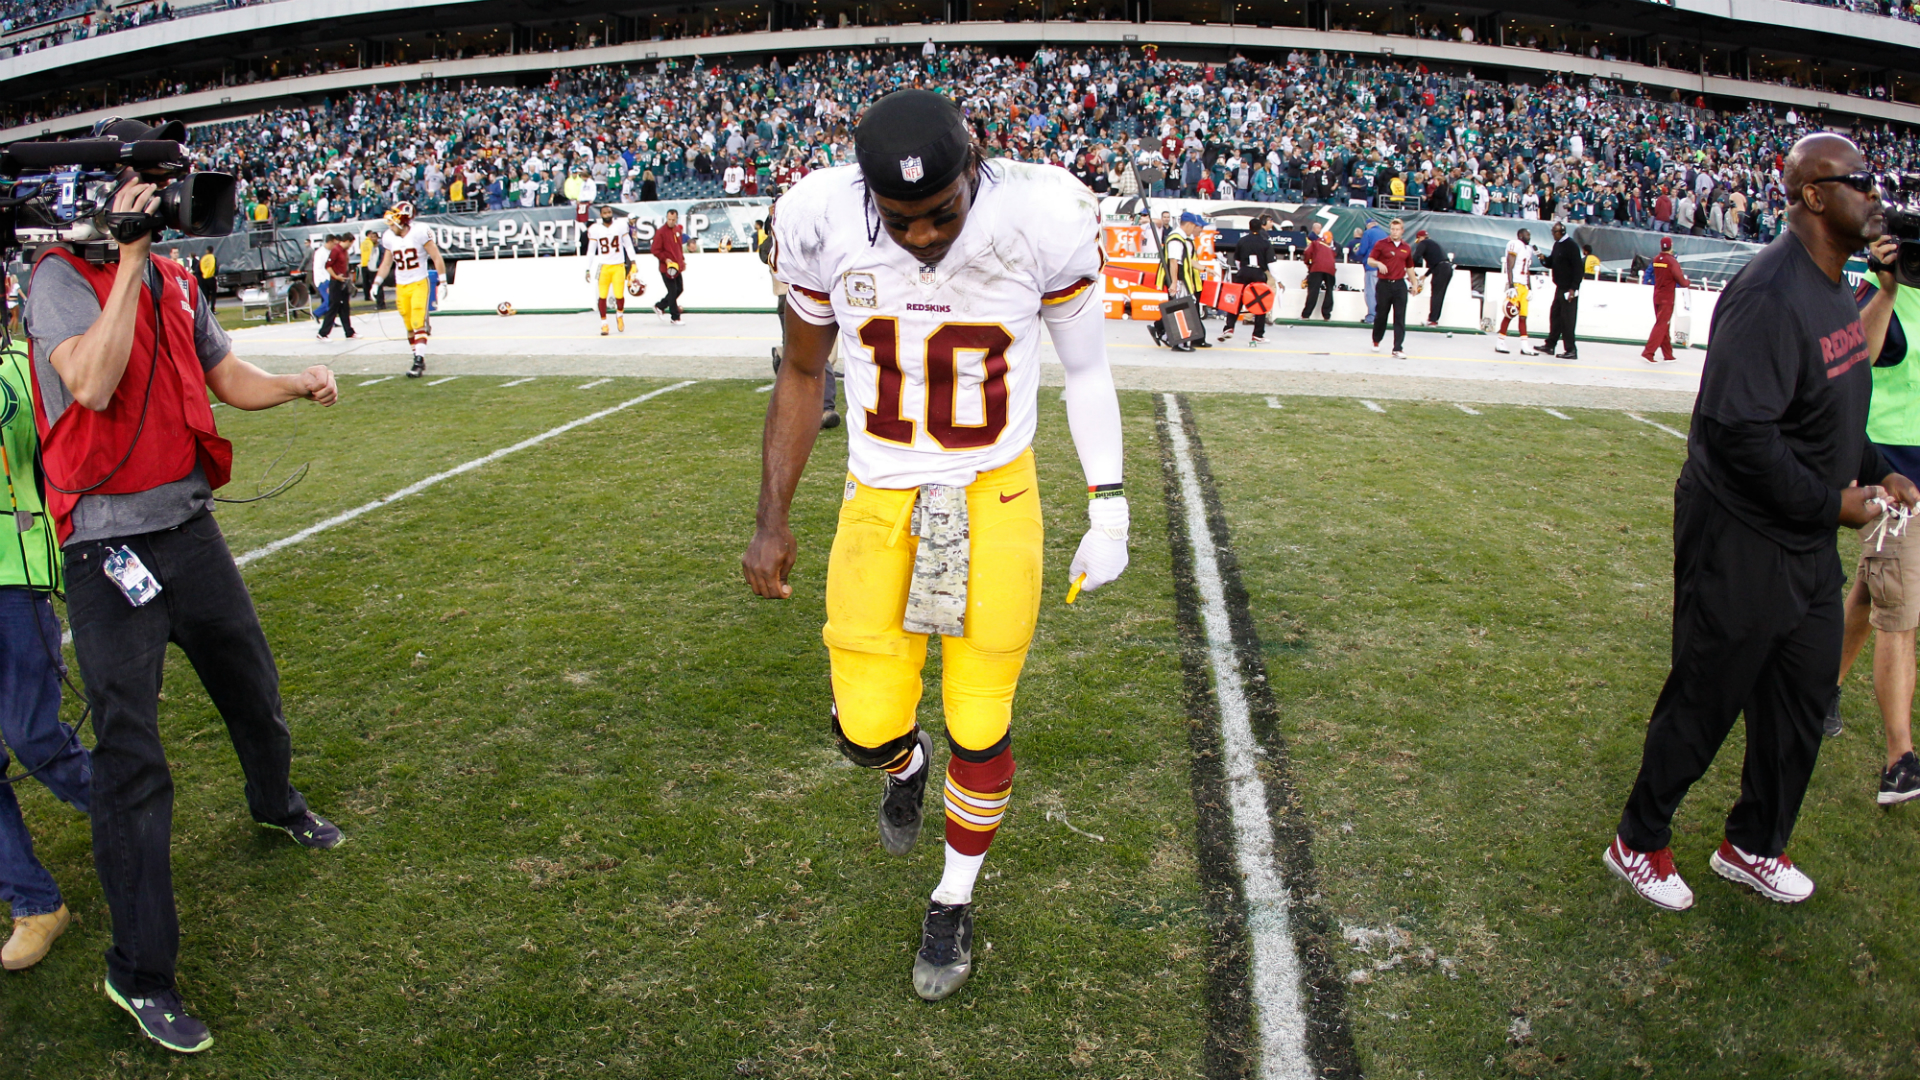 Santana Moss: RGIII Out Of NFL Due To Issues With Coaches